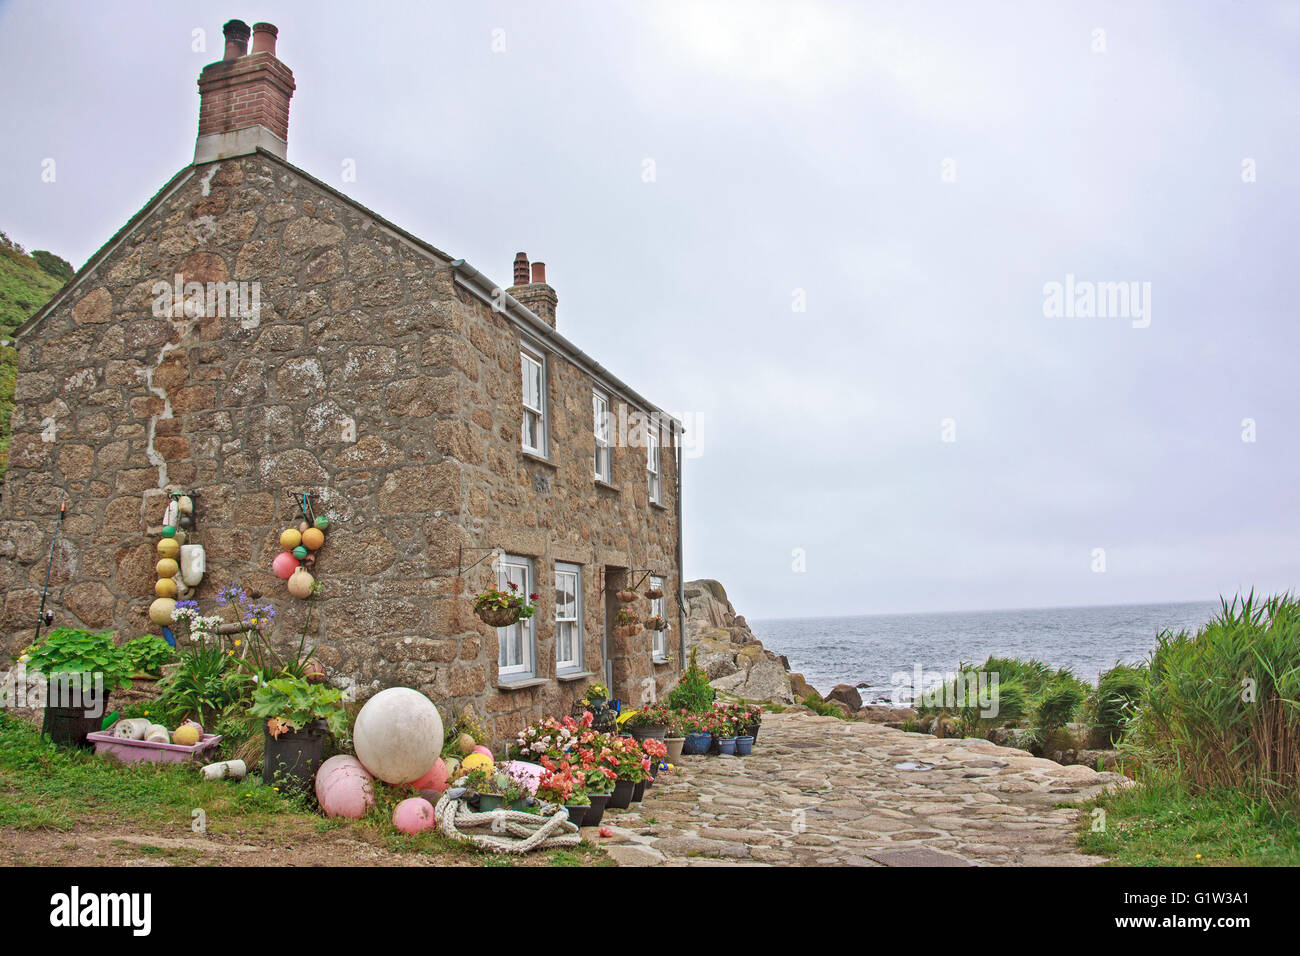 A Traditional Stone Fishing Cottage Overlooking The Sea At Penberth Cove  near Penzance in Cornwall - Stock Image